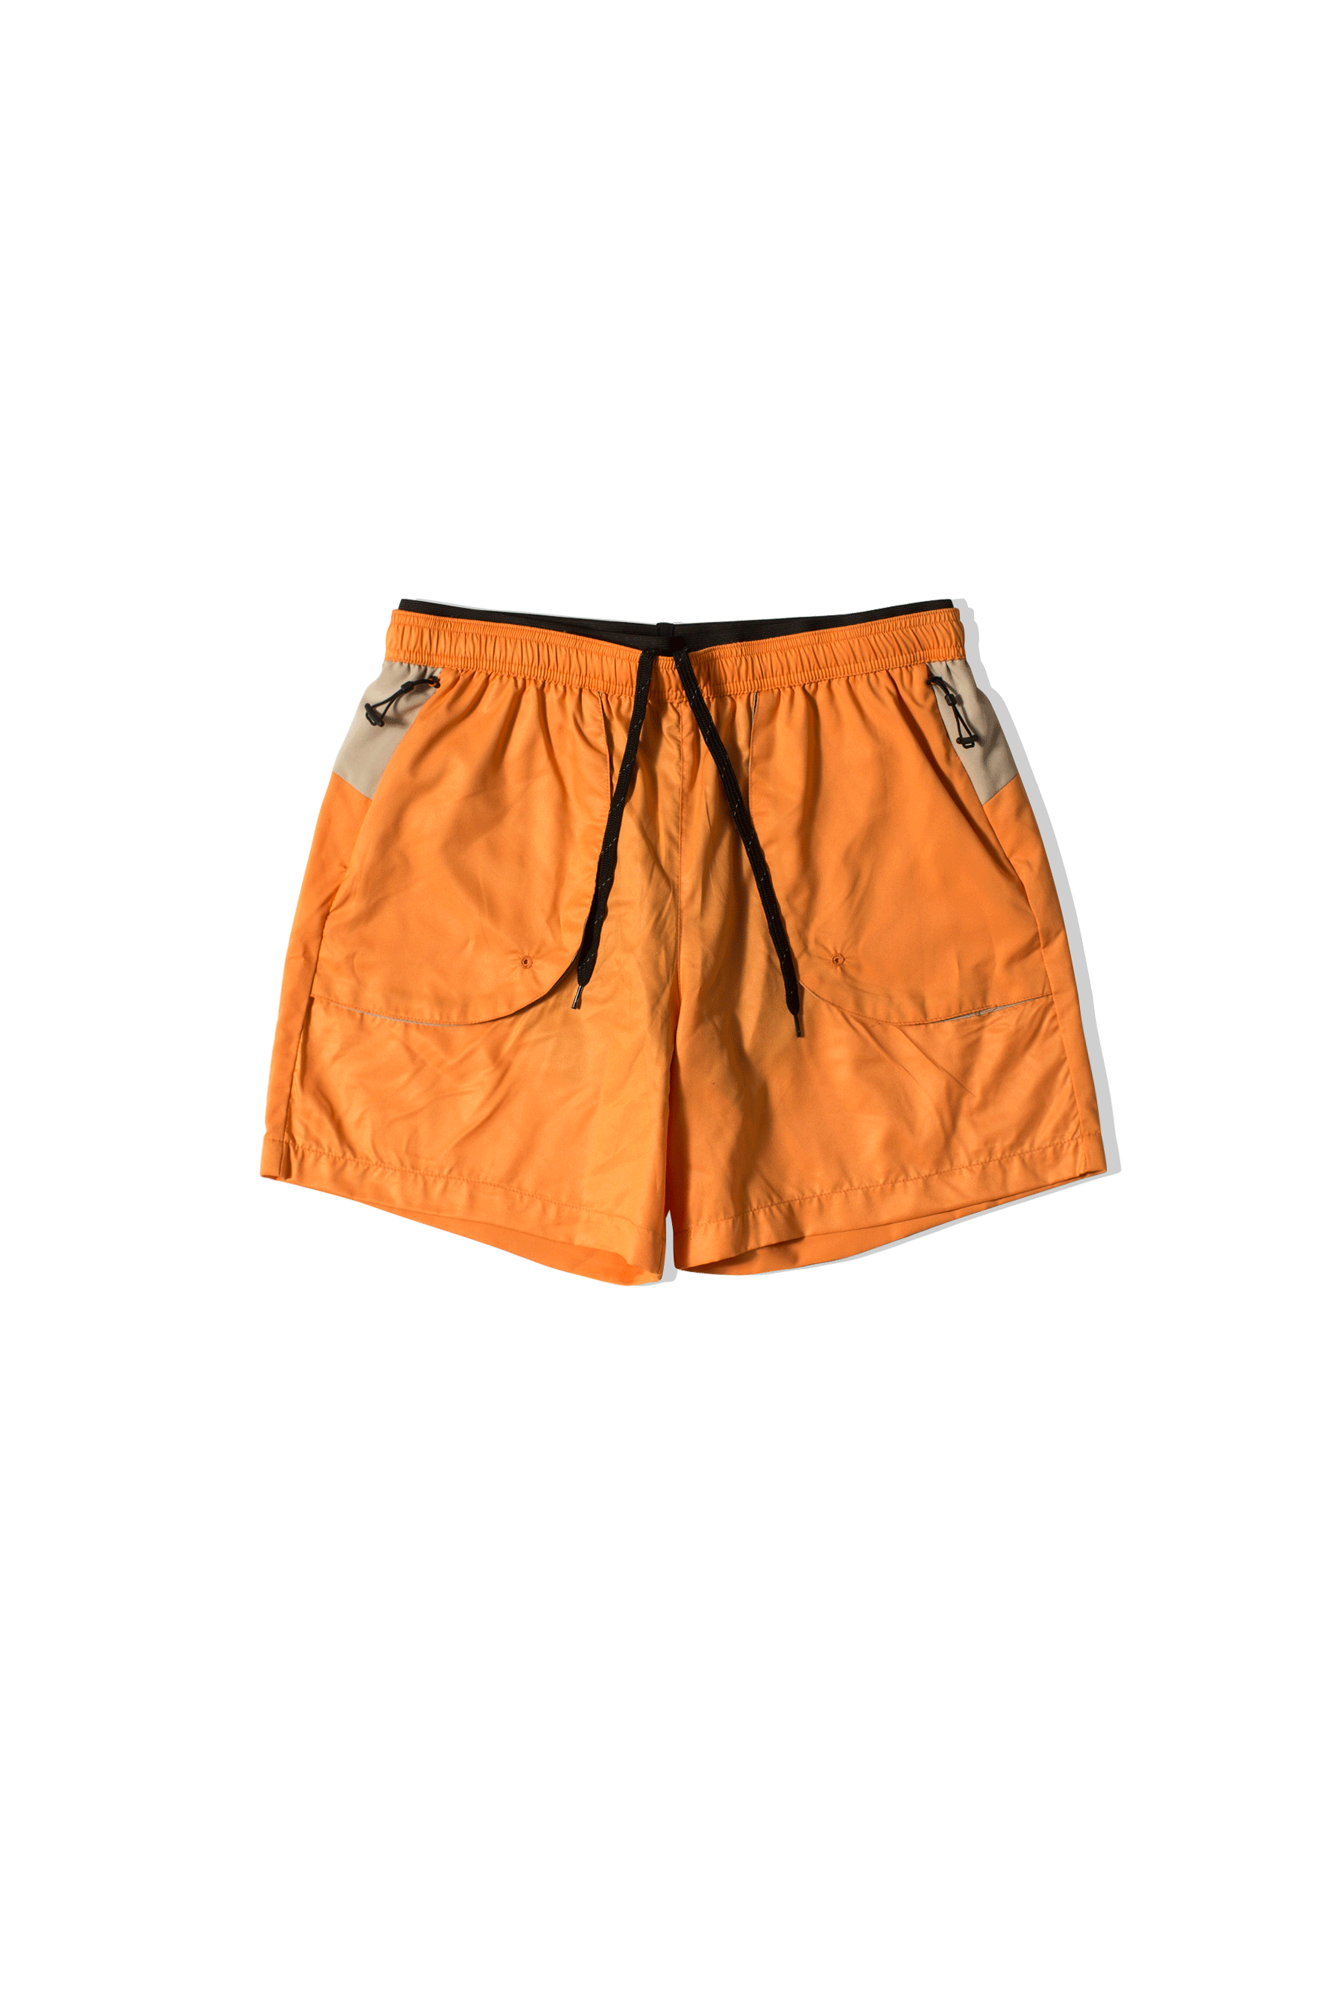 Soulland Shorts Harley Shorts Orange 11026-1057#000#ORNG#S - One Block Down